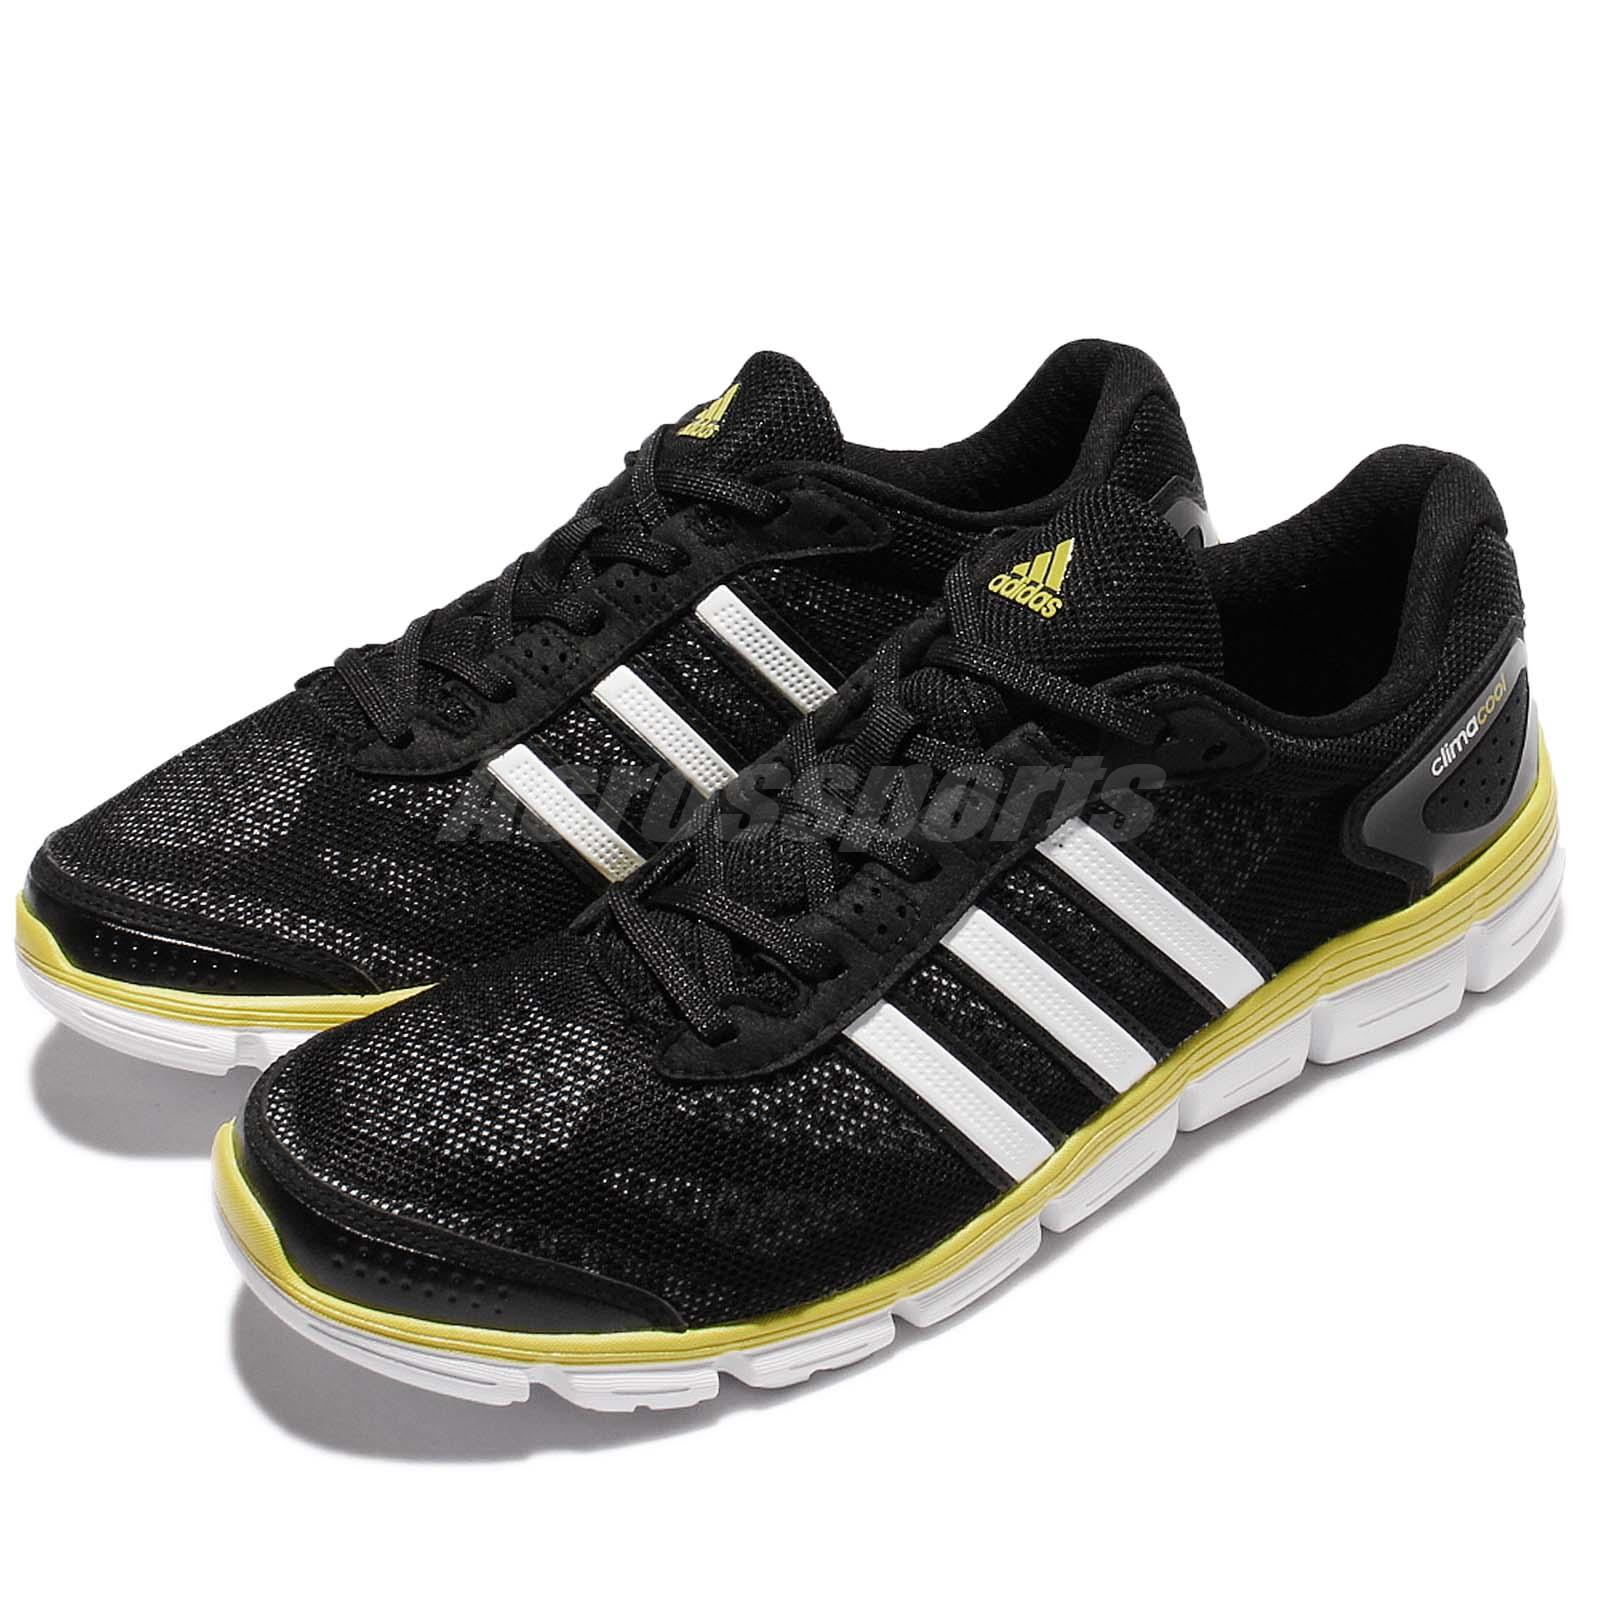 2a9d6212 Details about 50% Off adidas CC Fresh M Climacool Black Yellow Men Running  Shoe Trainer S76750